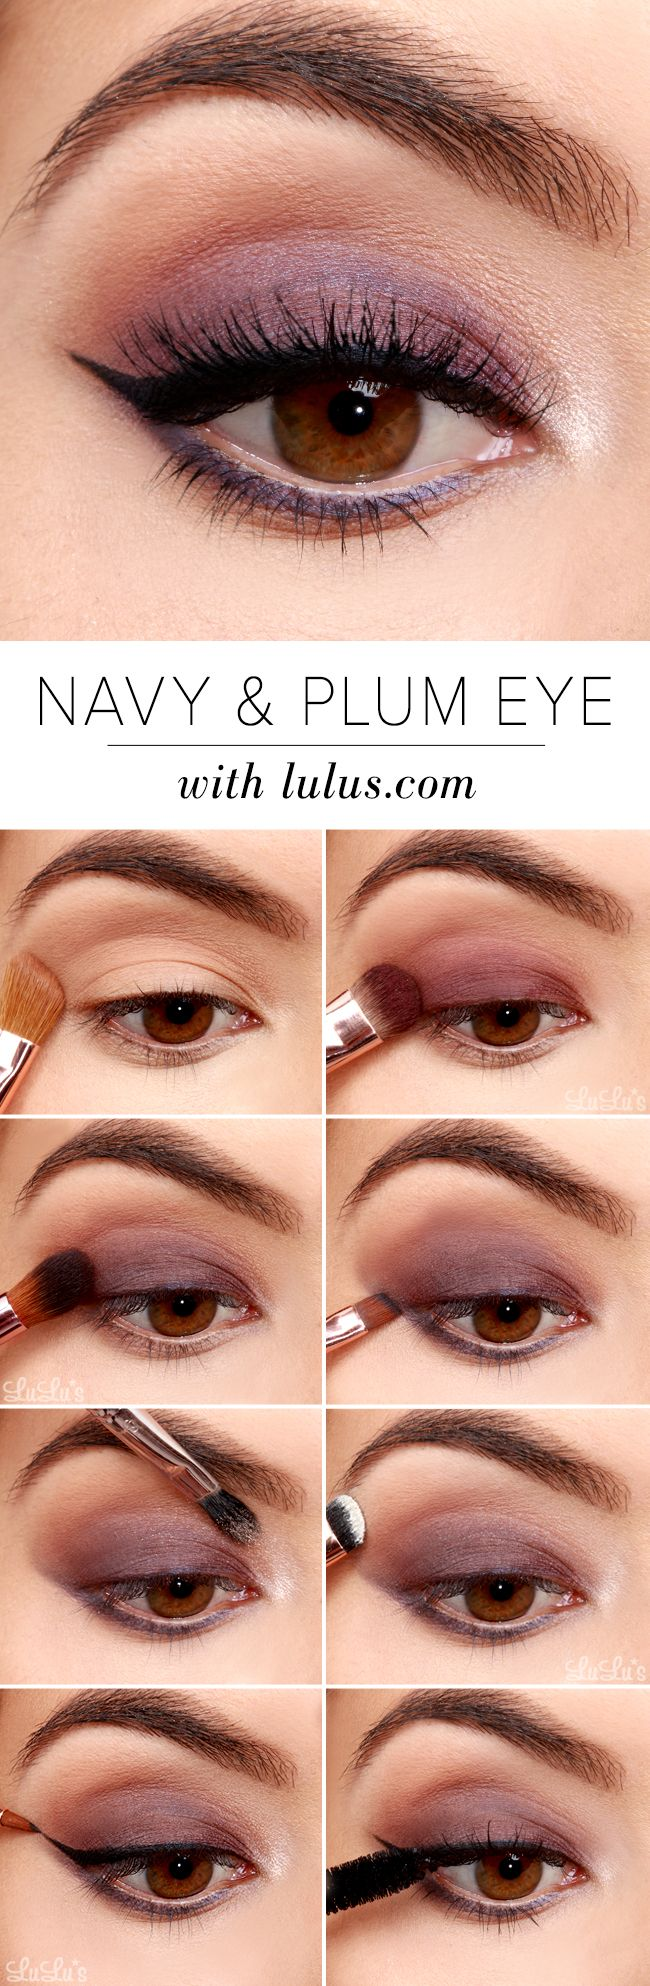 Natural makeup looks for brown eyes cat eye makeup eyeshadow for brown eyes natural makeup tutorial picture1 baditri Gallery